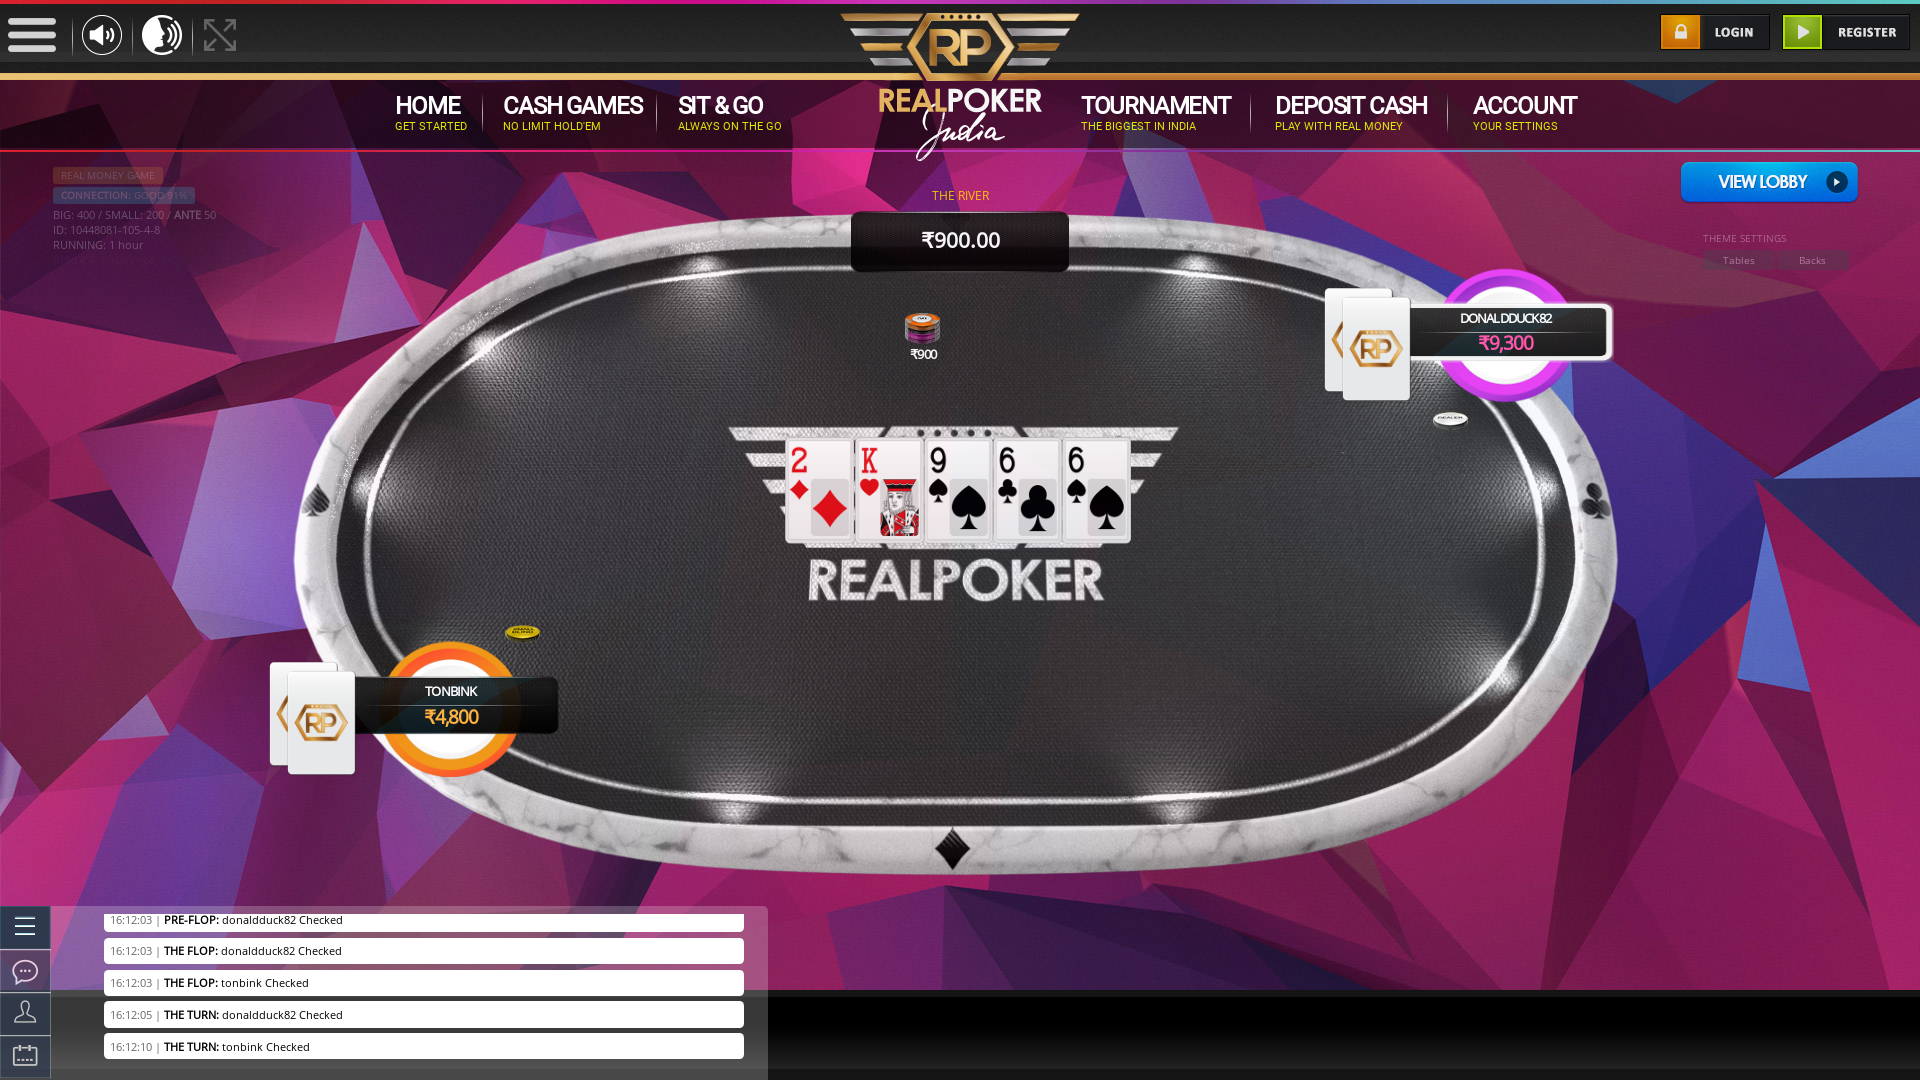 Online poker on a 10 player table in the 63rd minute match up